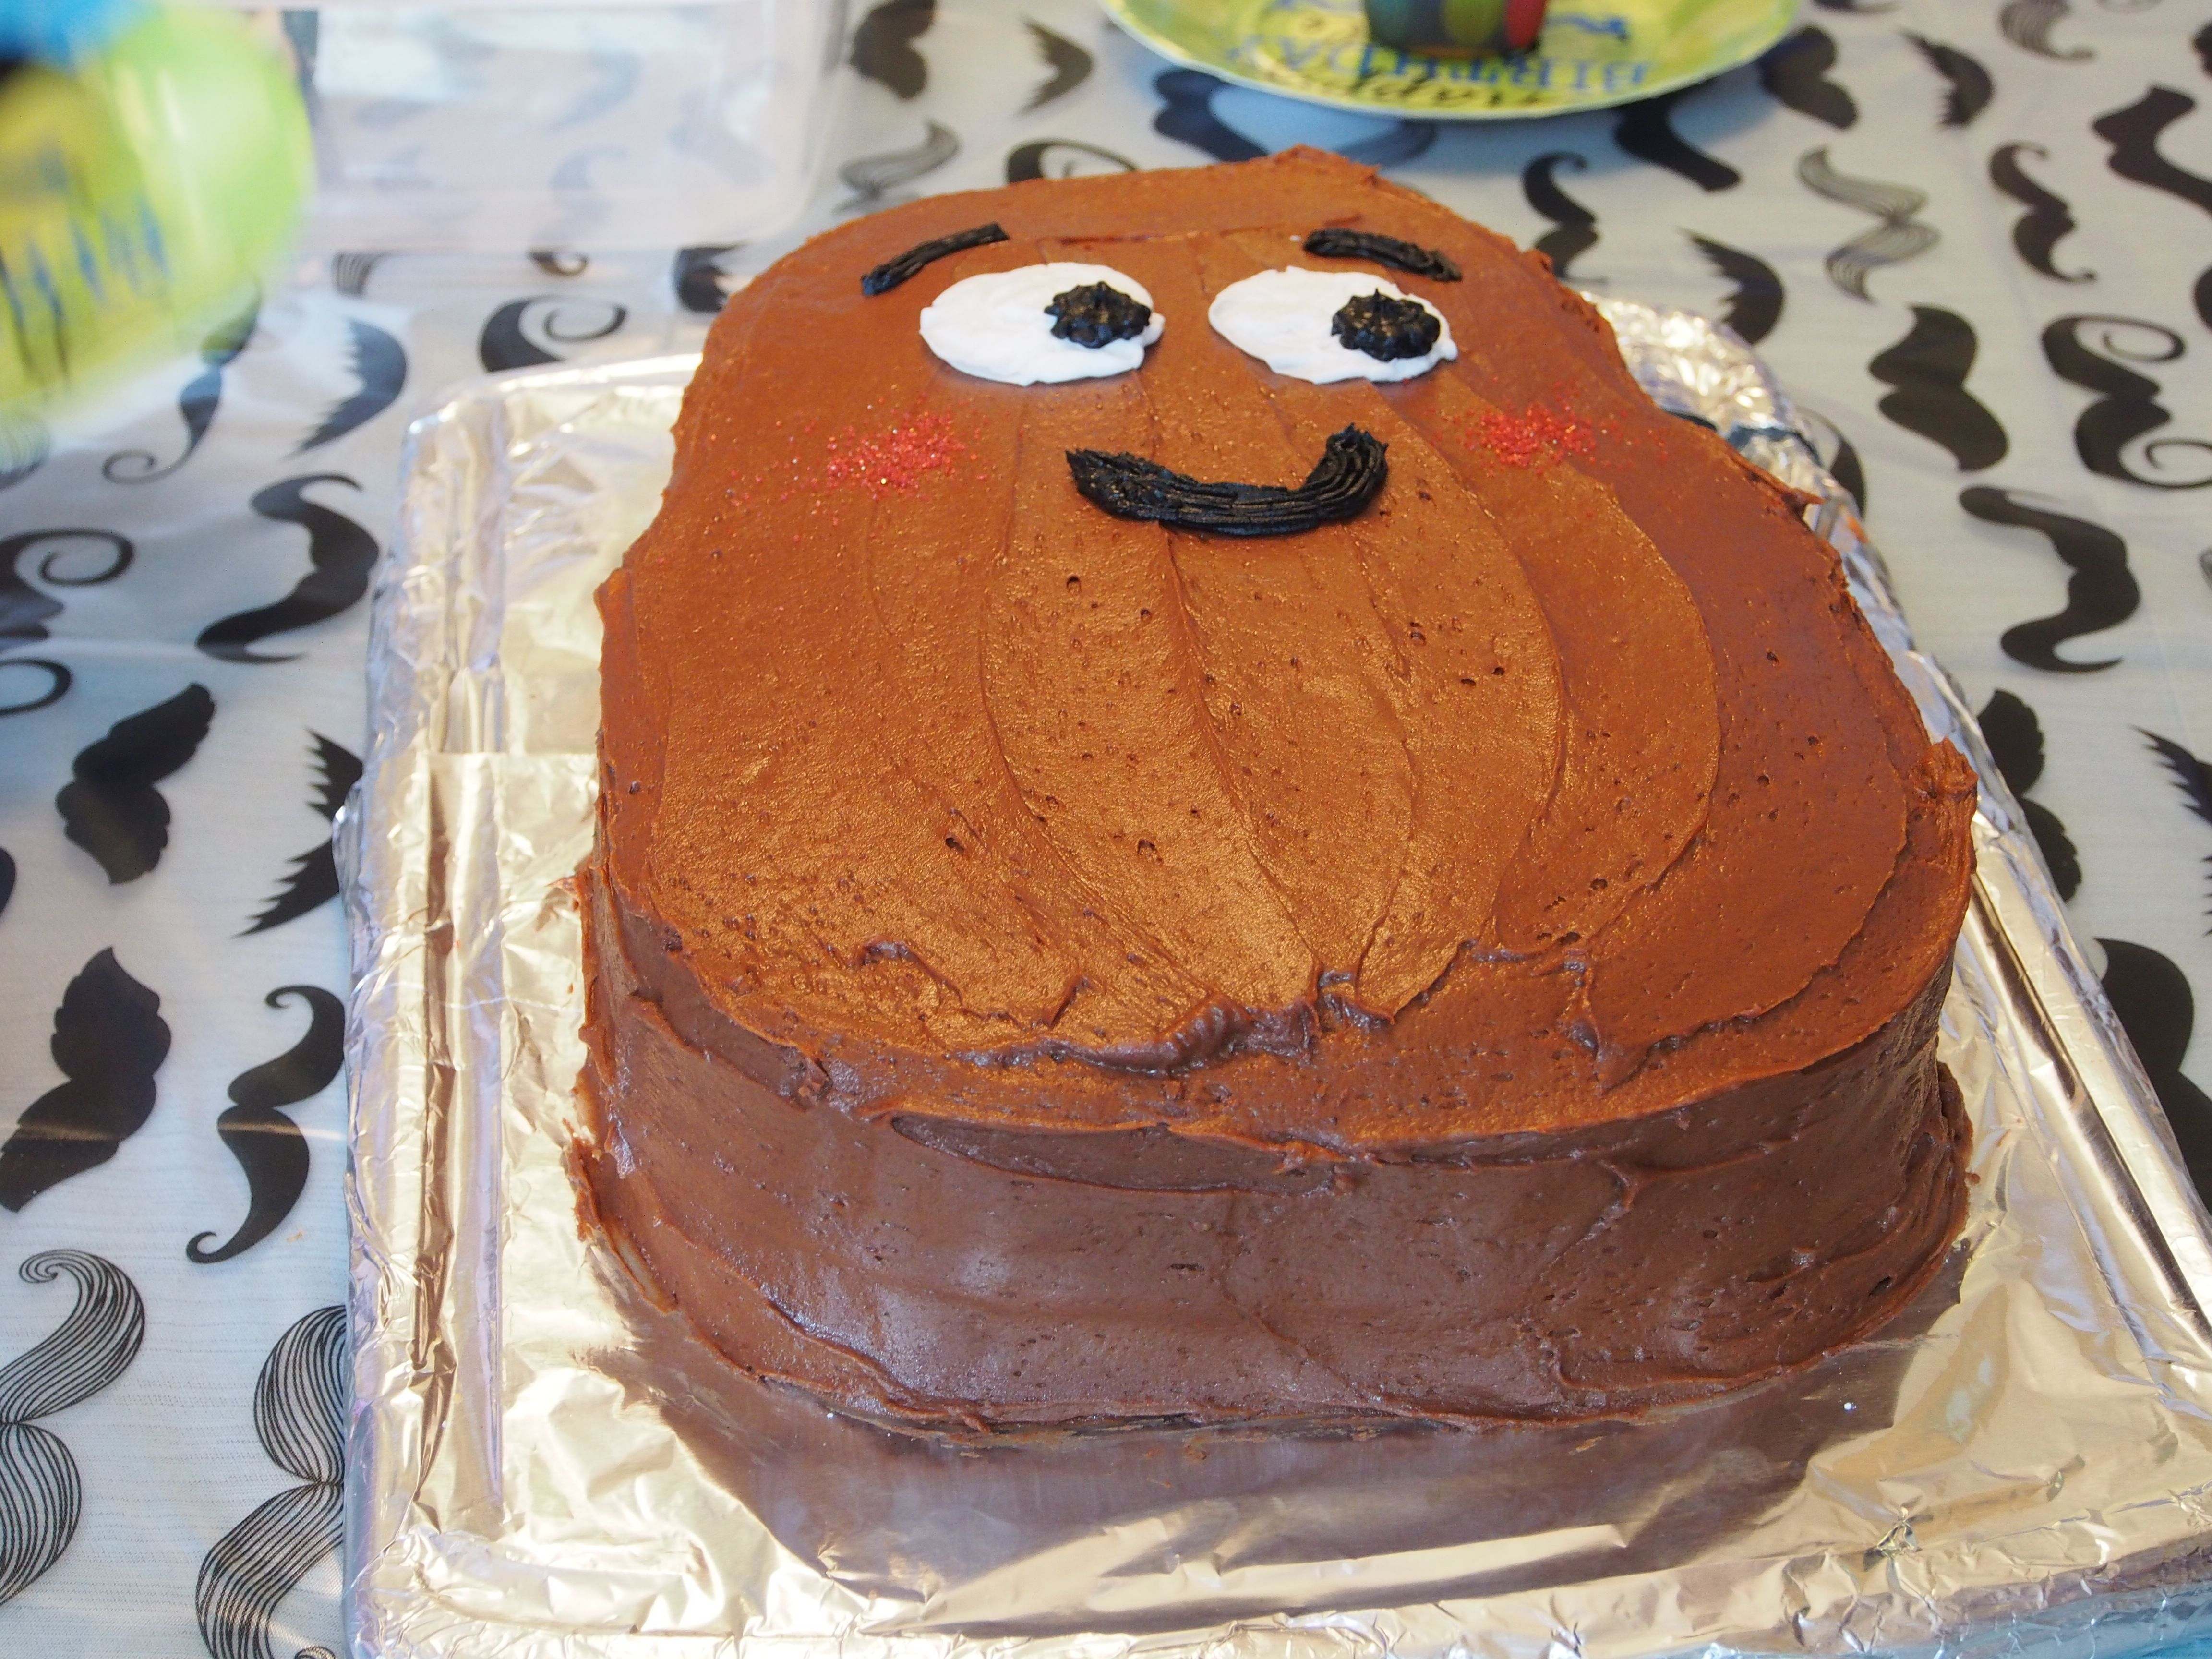 Remarkable Teddys Small Potatoes Birthday Cake It Was Yummy Cake Baking Personalised Birthday Cards Paralily Jamesorg